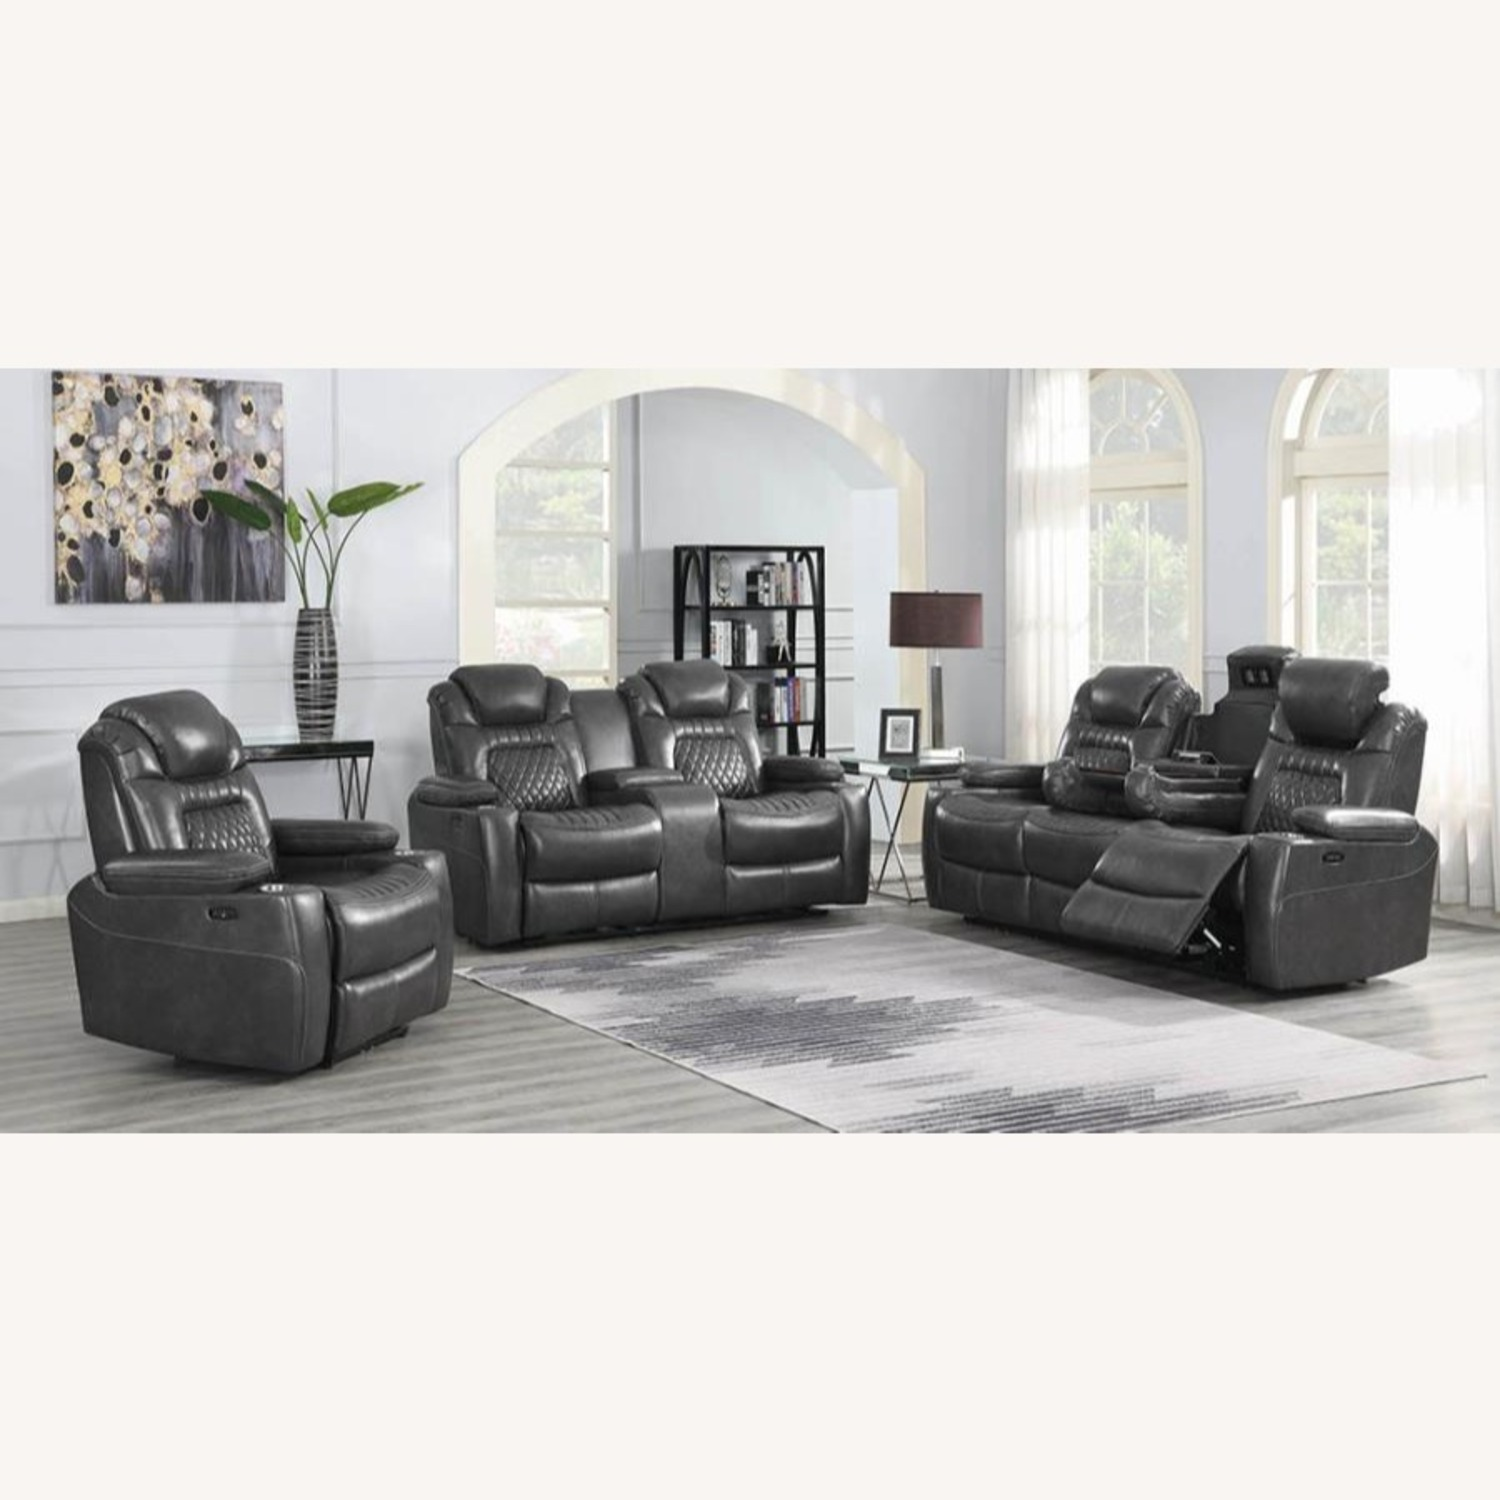 Power2 Sofa In Charcoal Leatherette - image-10